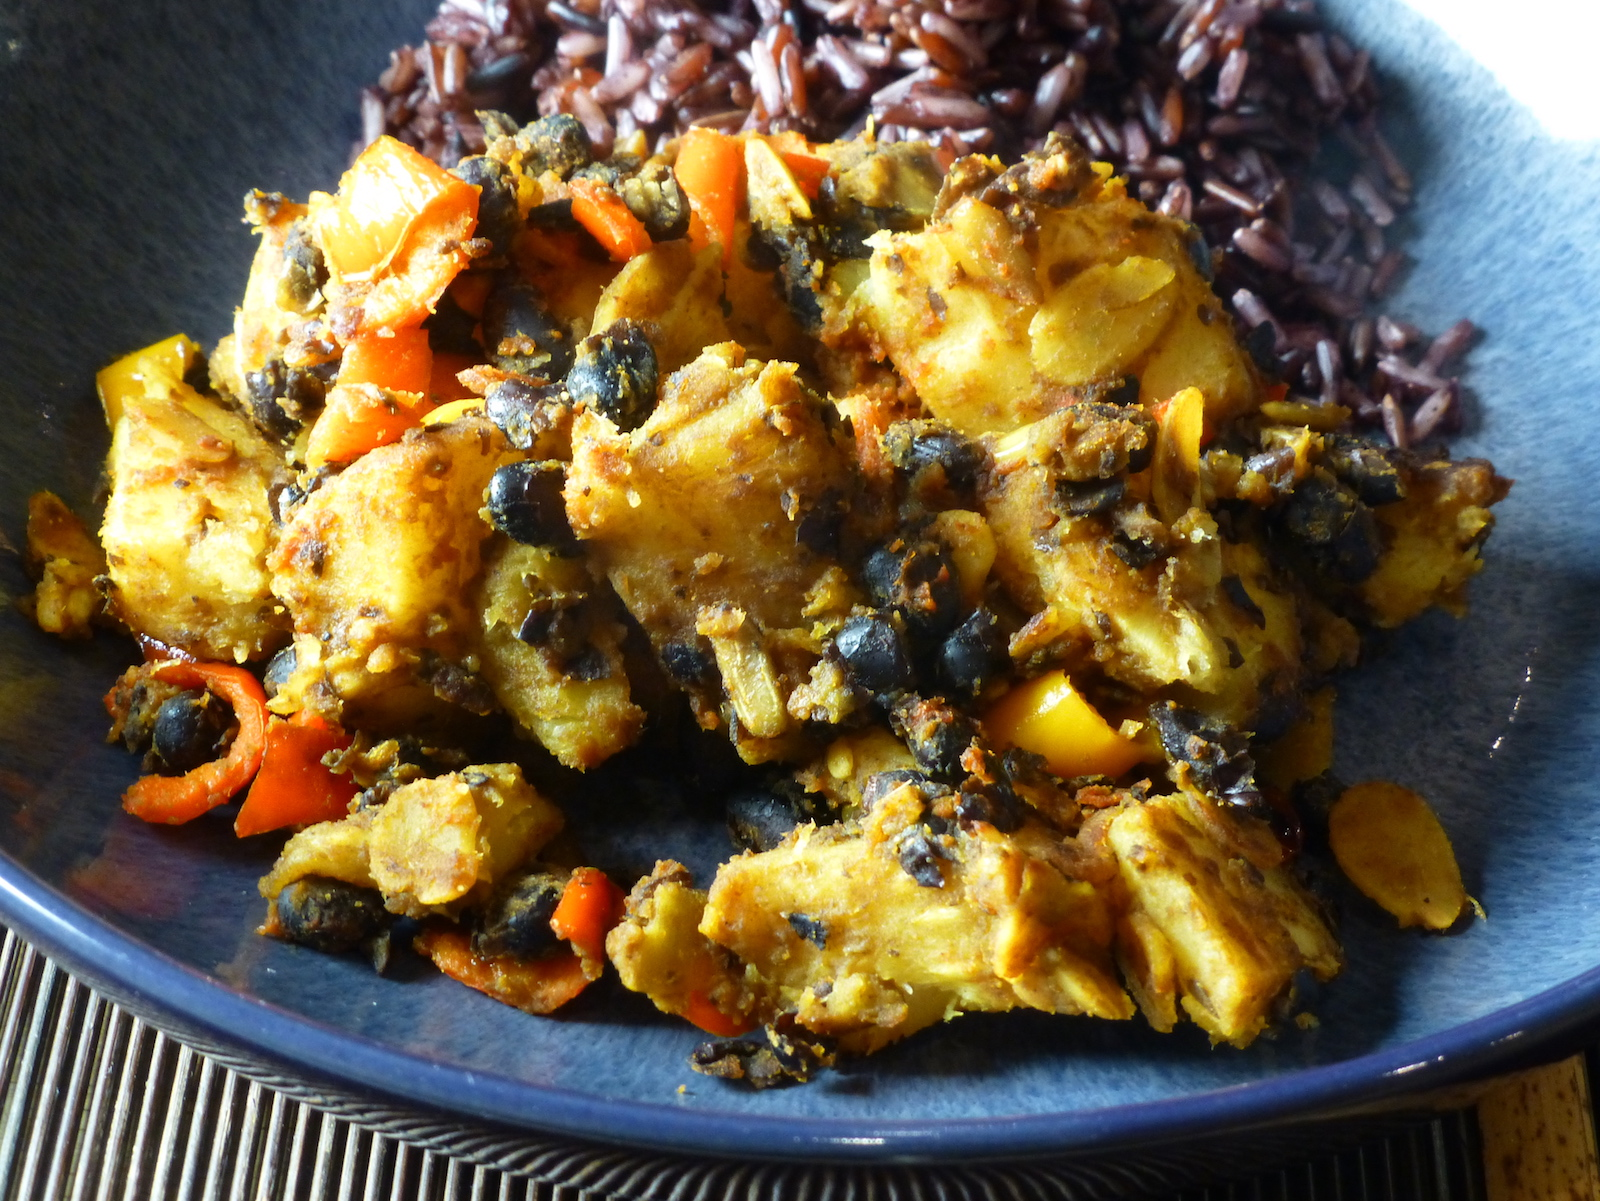 Parsnips, peppers and black beans with rice